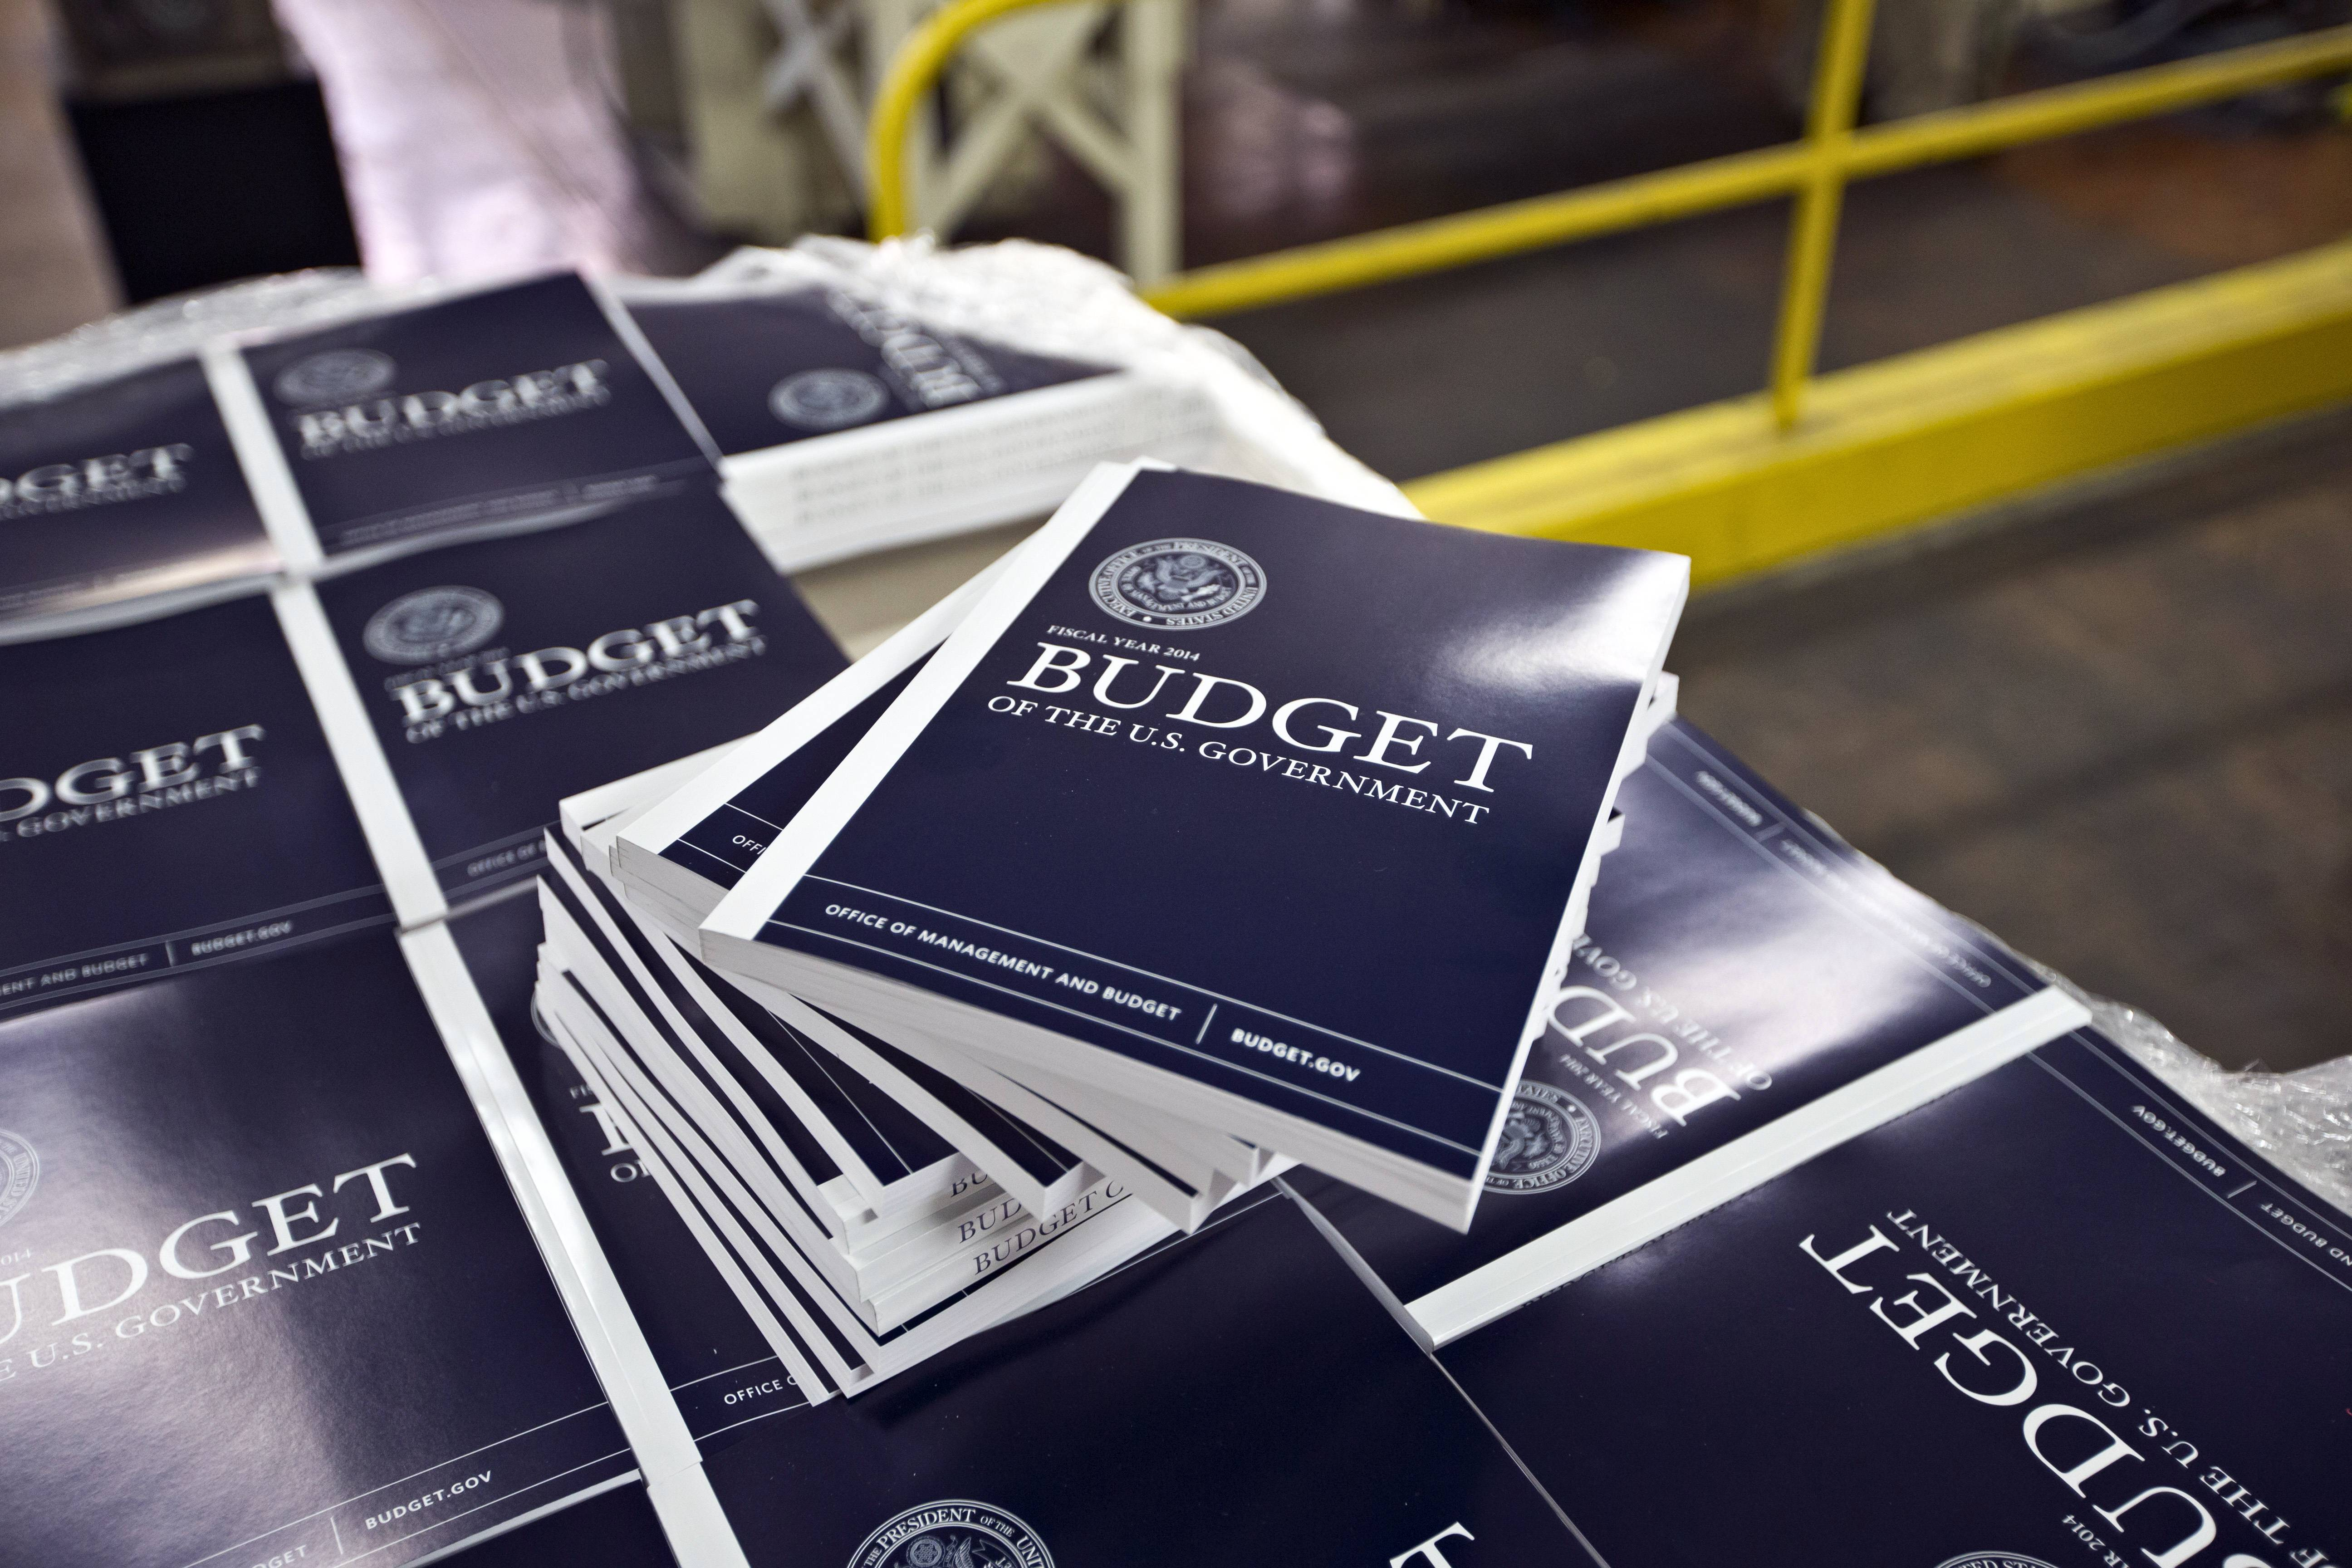 Copies of President Barack Obama's budget plan for fiscal year 2014 are prepared for delivery at the U.S. Government Printing Office in Washington.